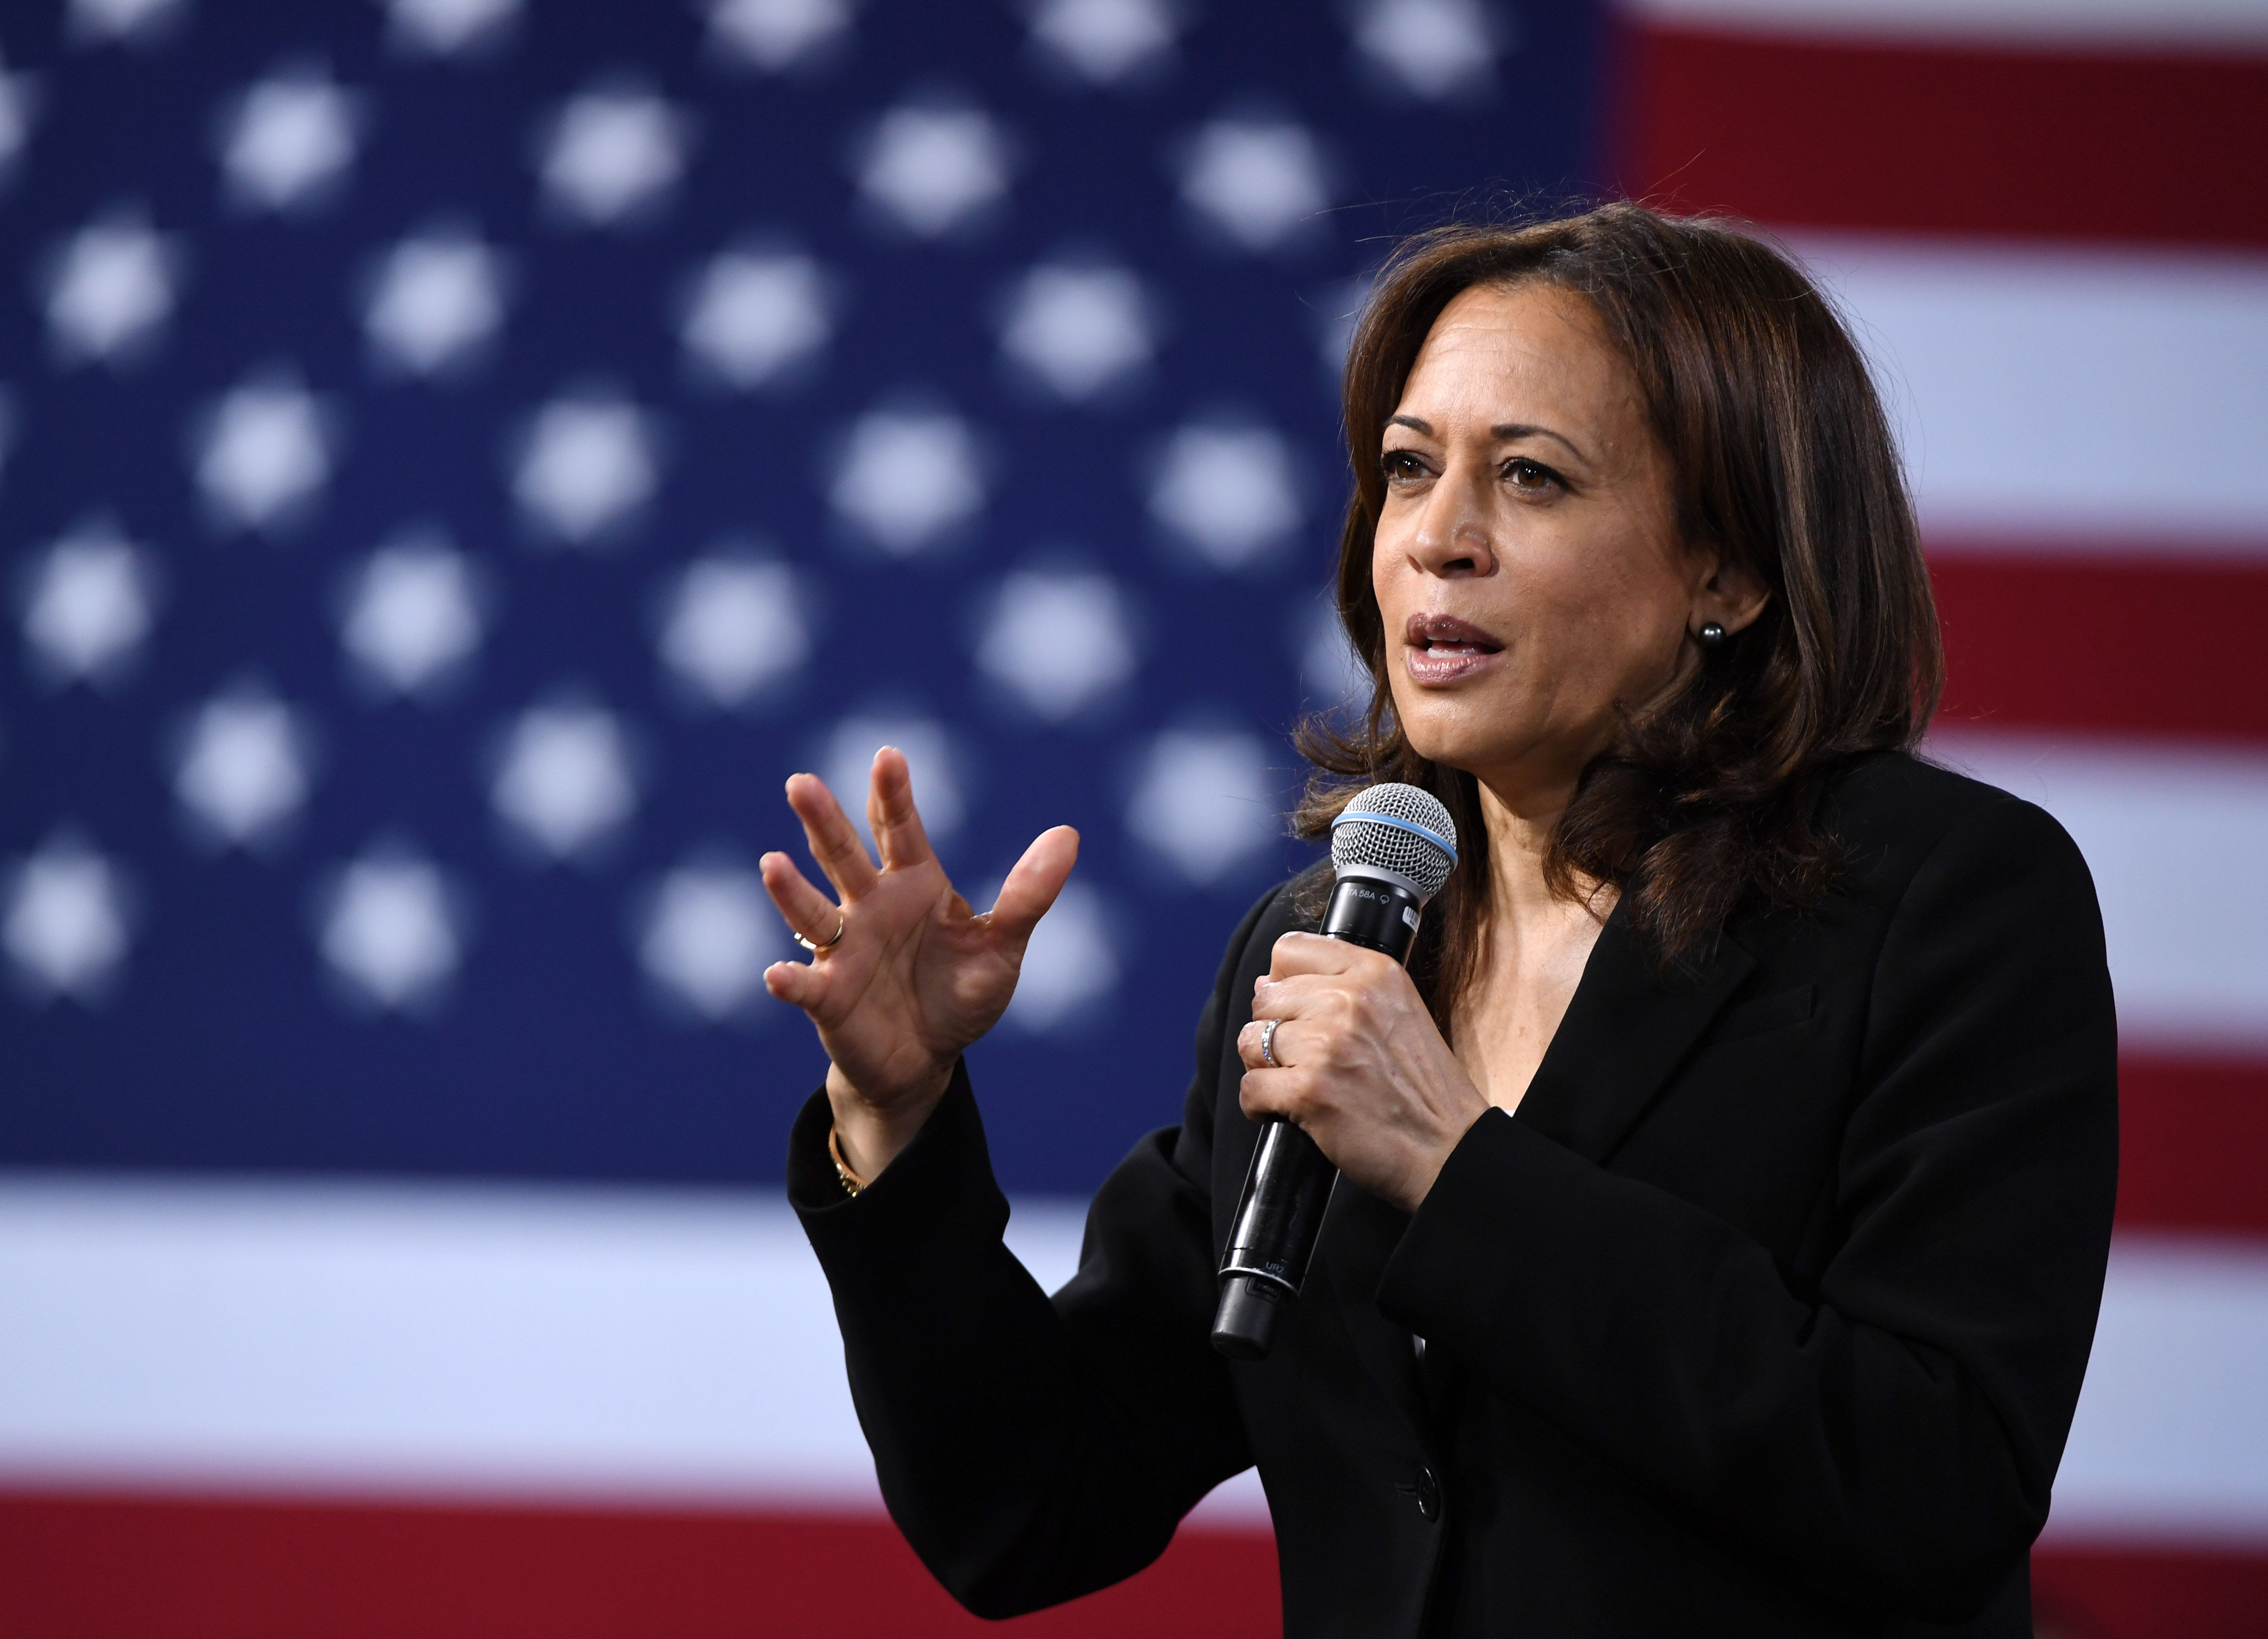 Black Moms Are Dying at Staggering Rates In America. Kamala Harris Says It's Time to Address the Crisis.